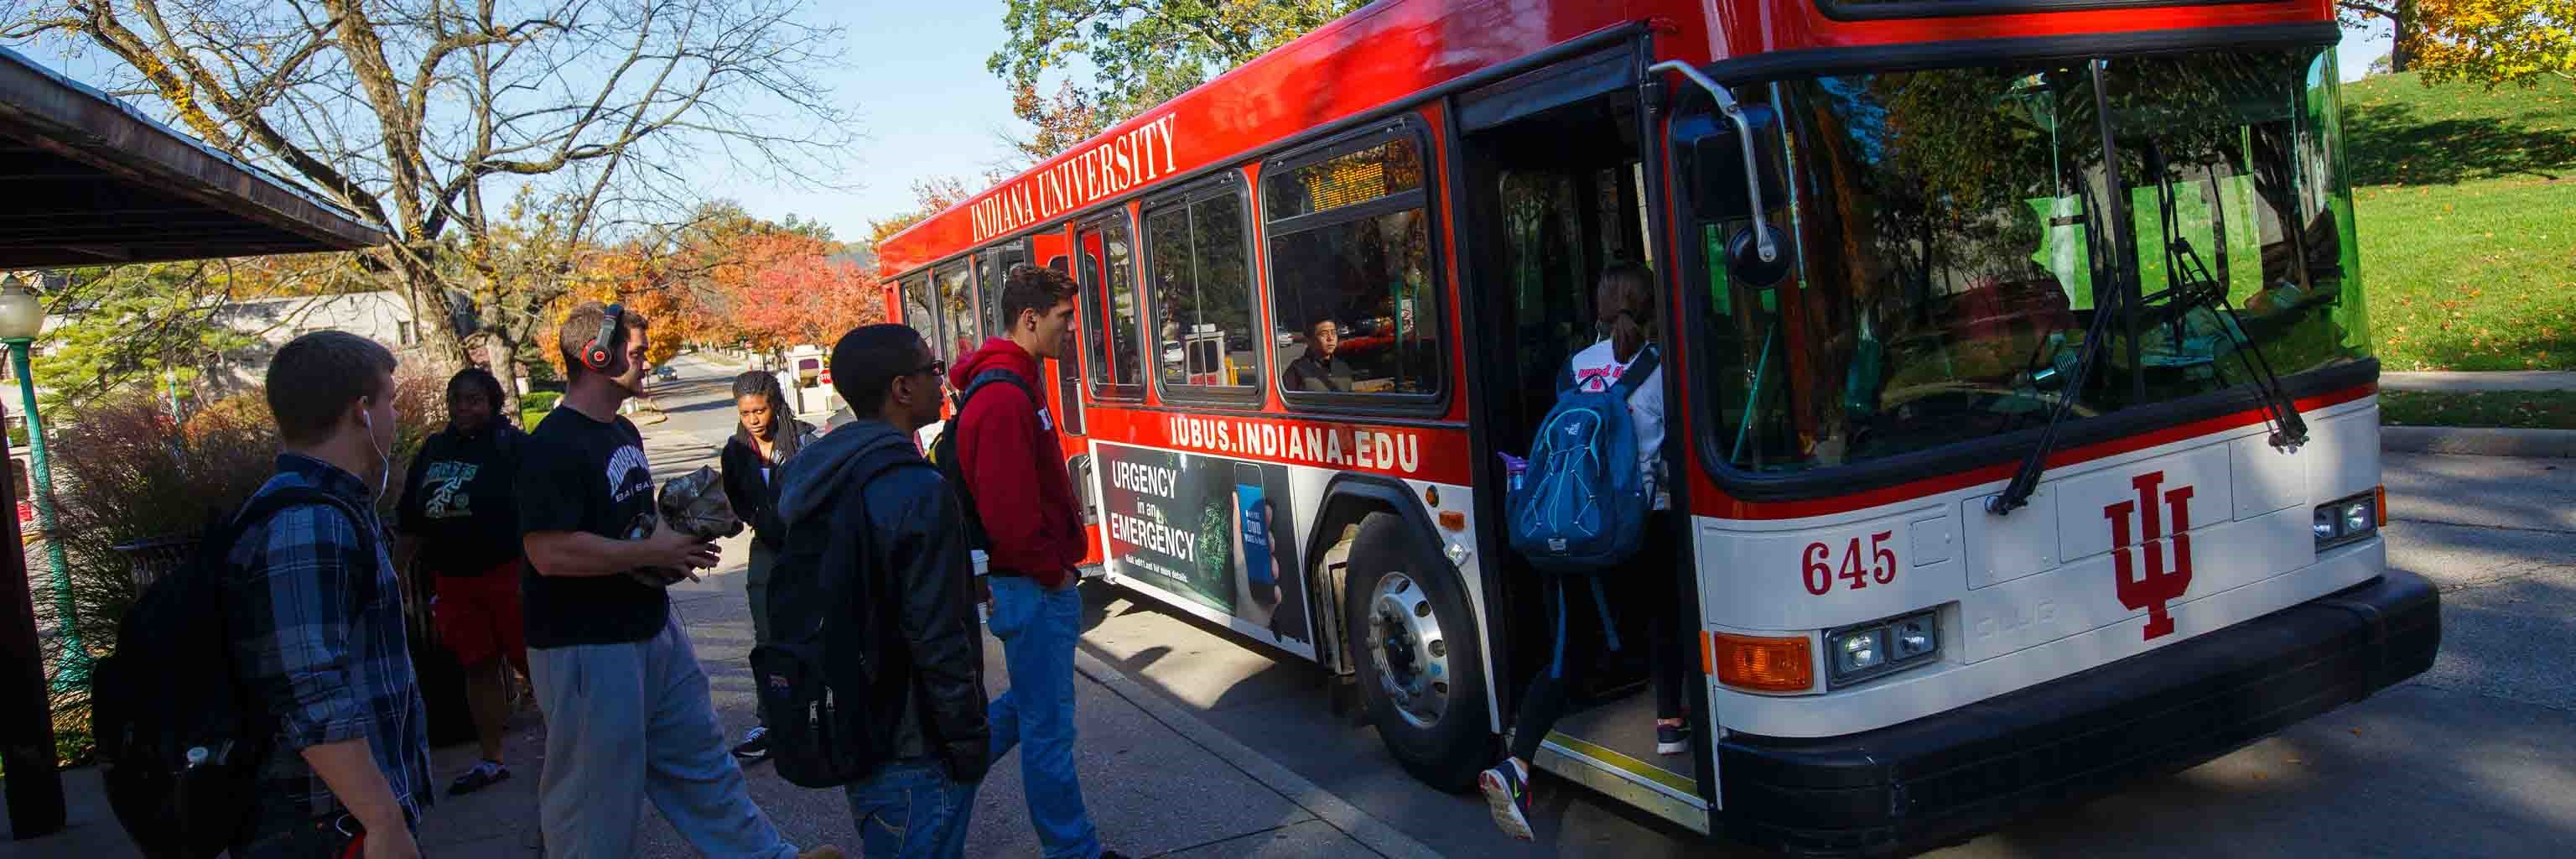 IU campus bus